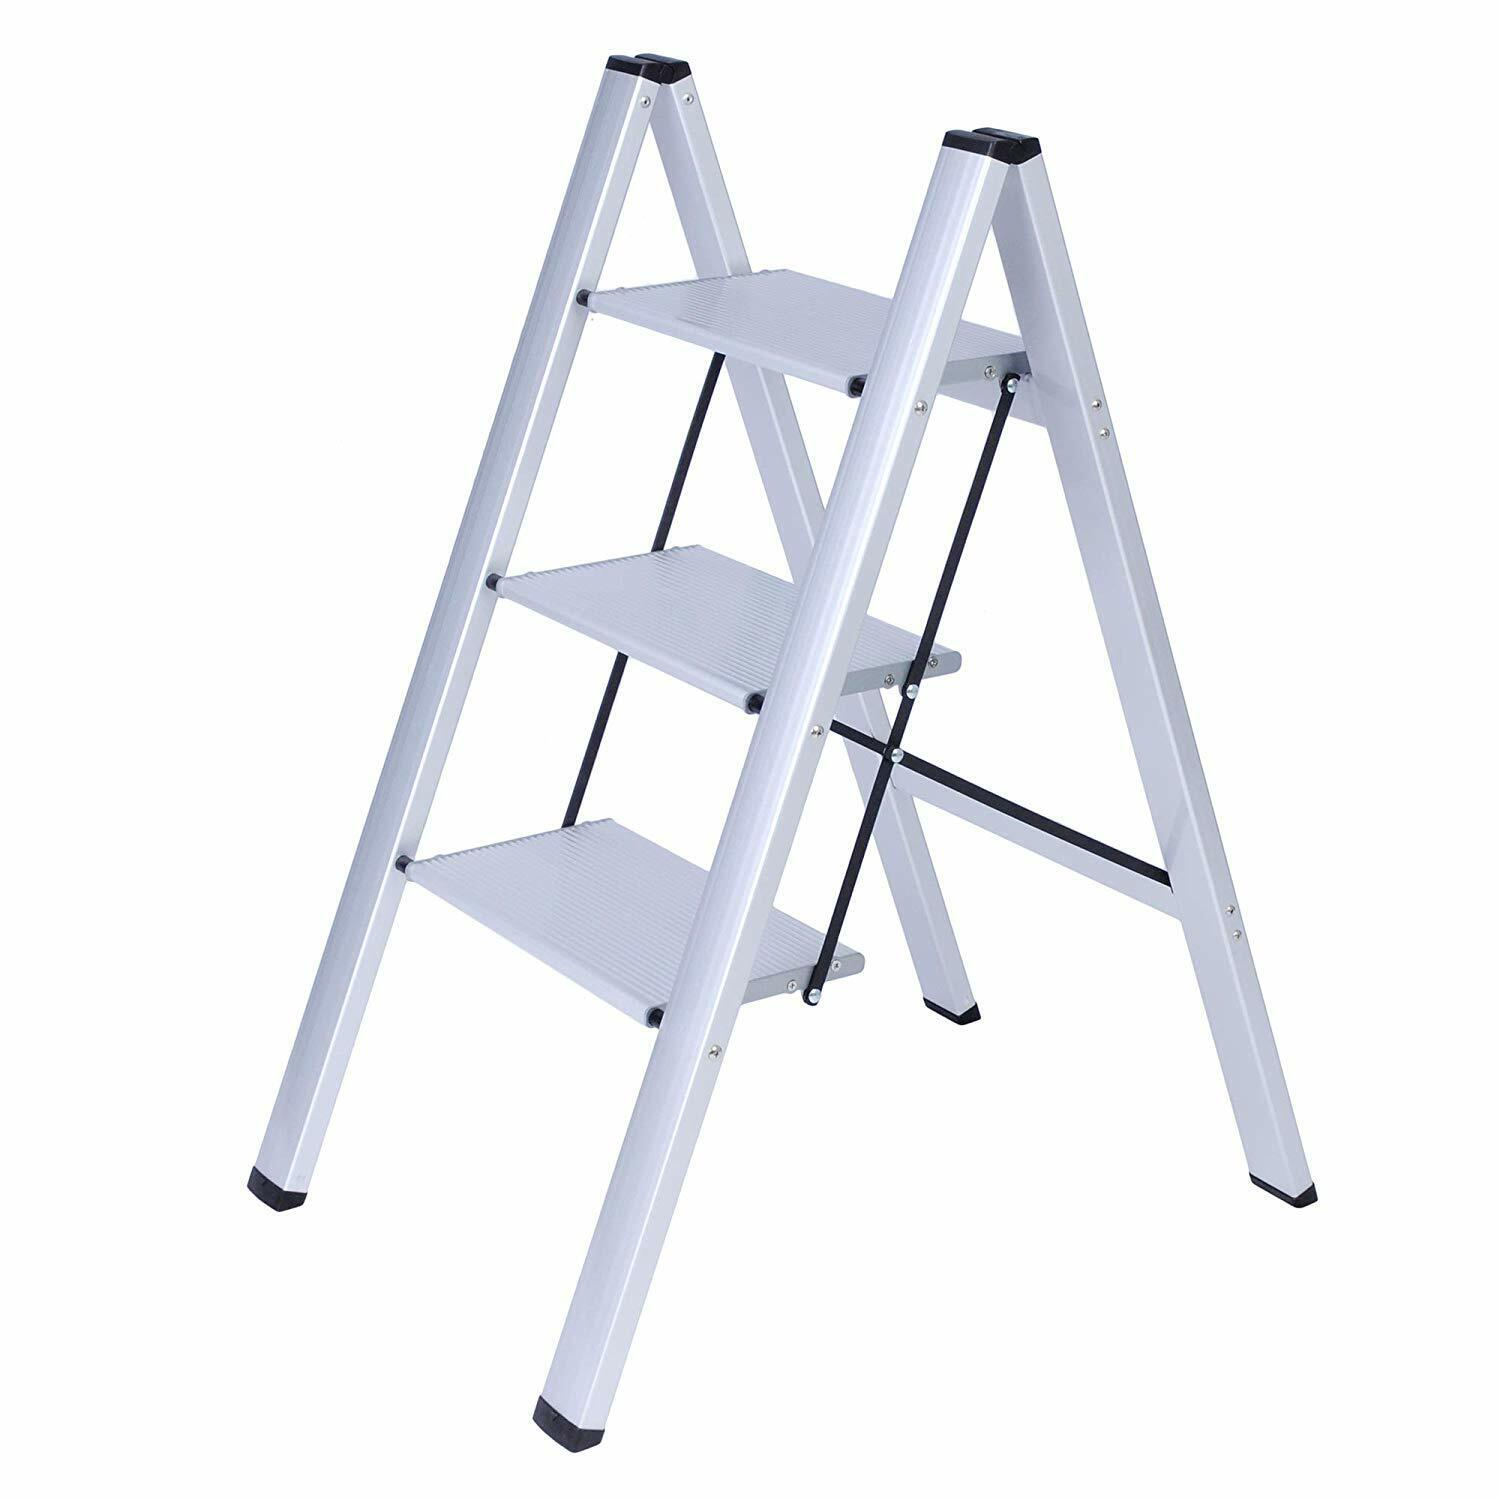 Cool Details About 3 Steps Safety Ladder Steel Folding Step Stool Lightweight Portable Step Ladder Machost Co Dining Chair Design Ideas Machostcouk